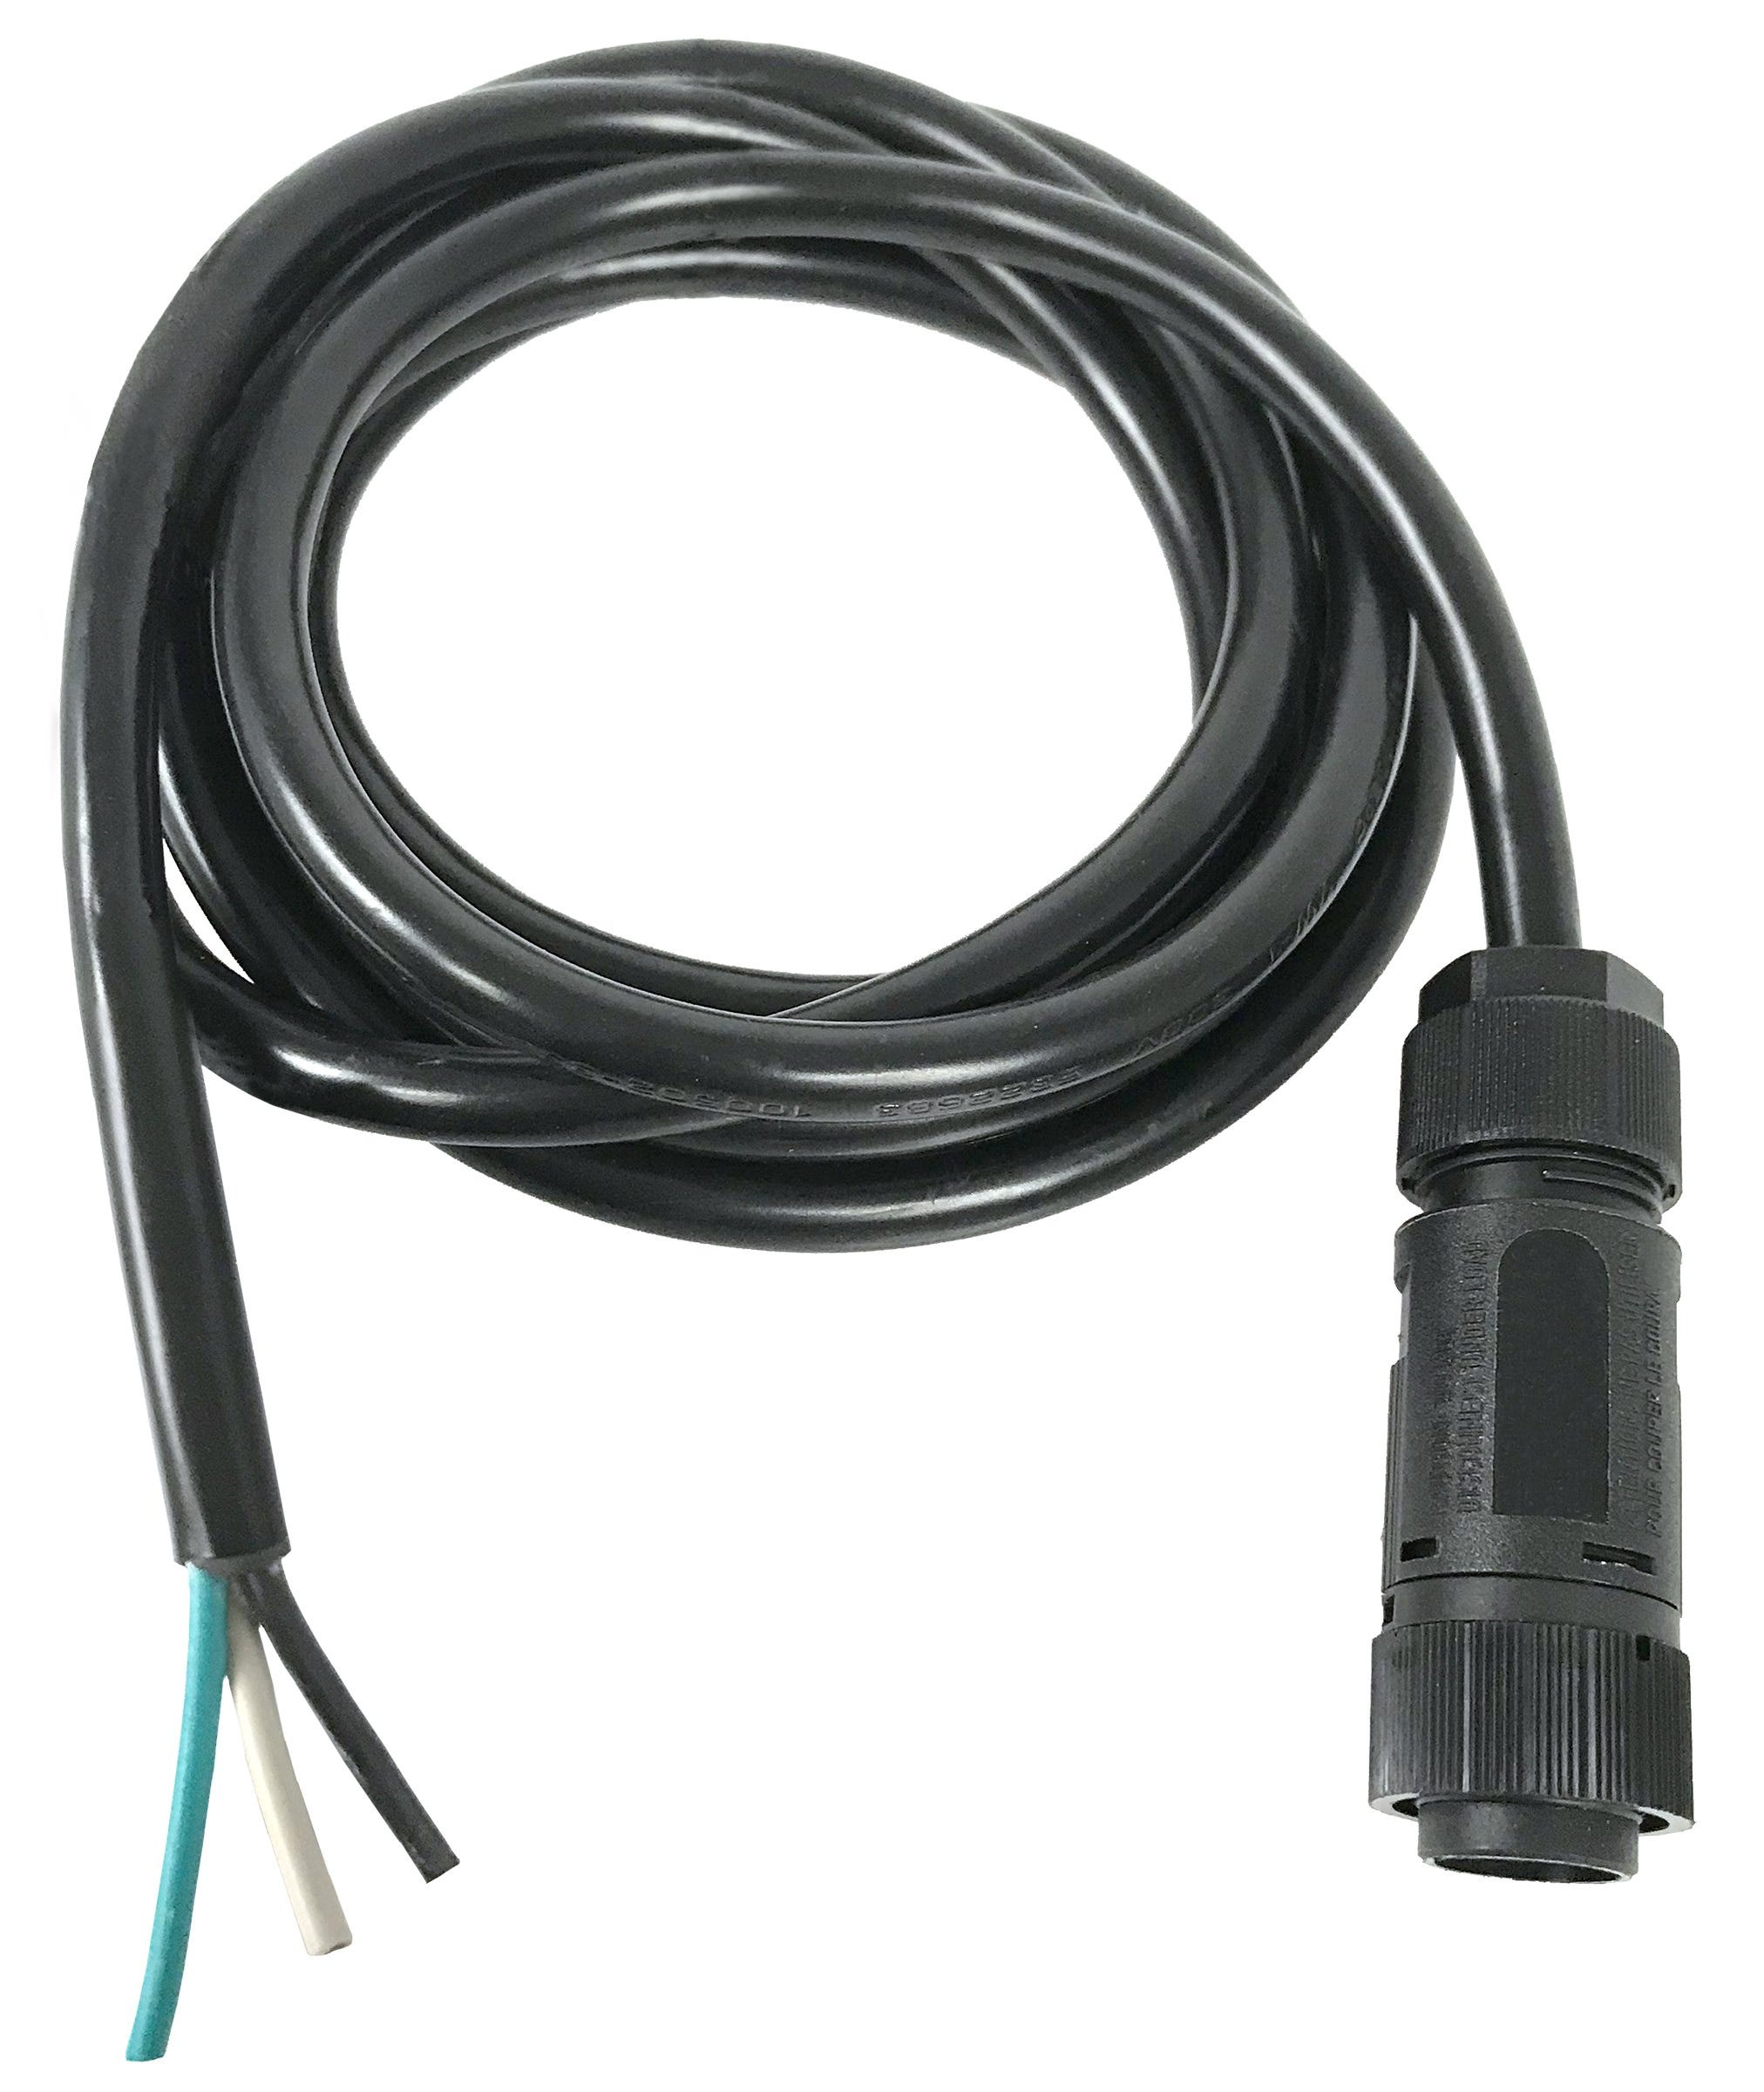 Photograph of Gavita 8 ft Power Cord 277-400 Volt for Gavita LED